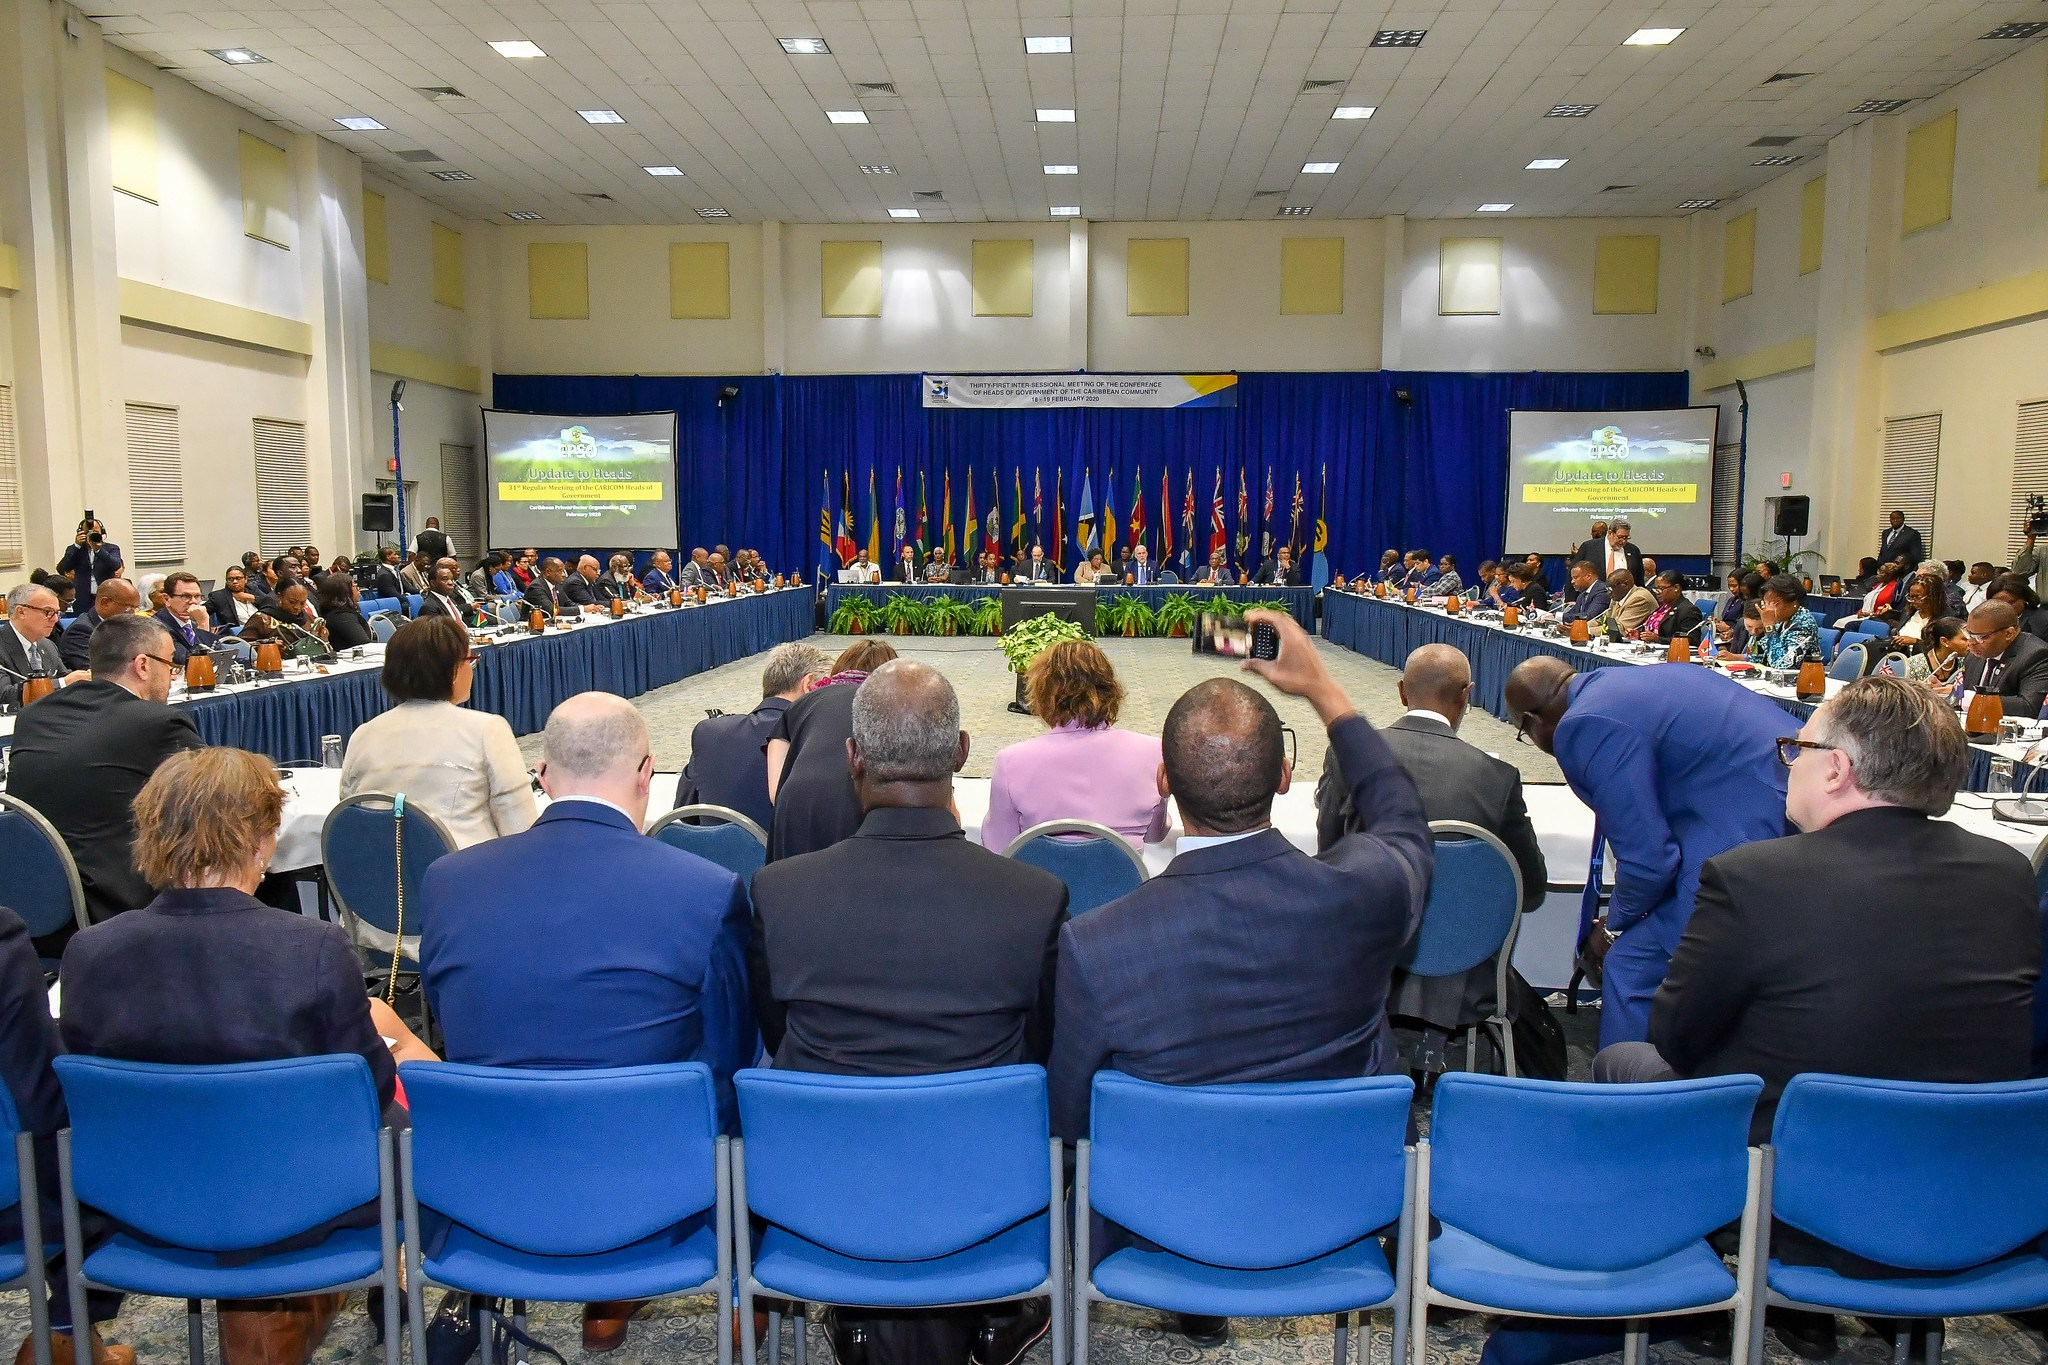 Heads of Government and delegates at the 31st Intersessional Meeting of the Conference of Heads of Government of CARICOM